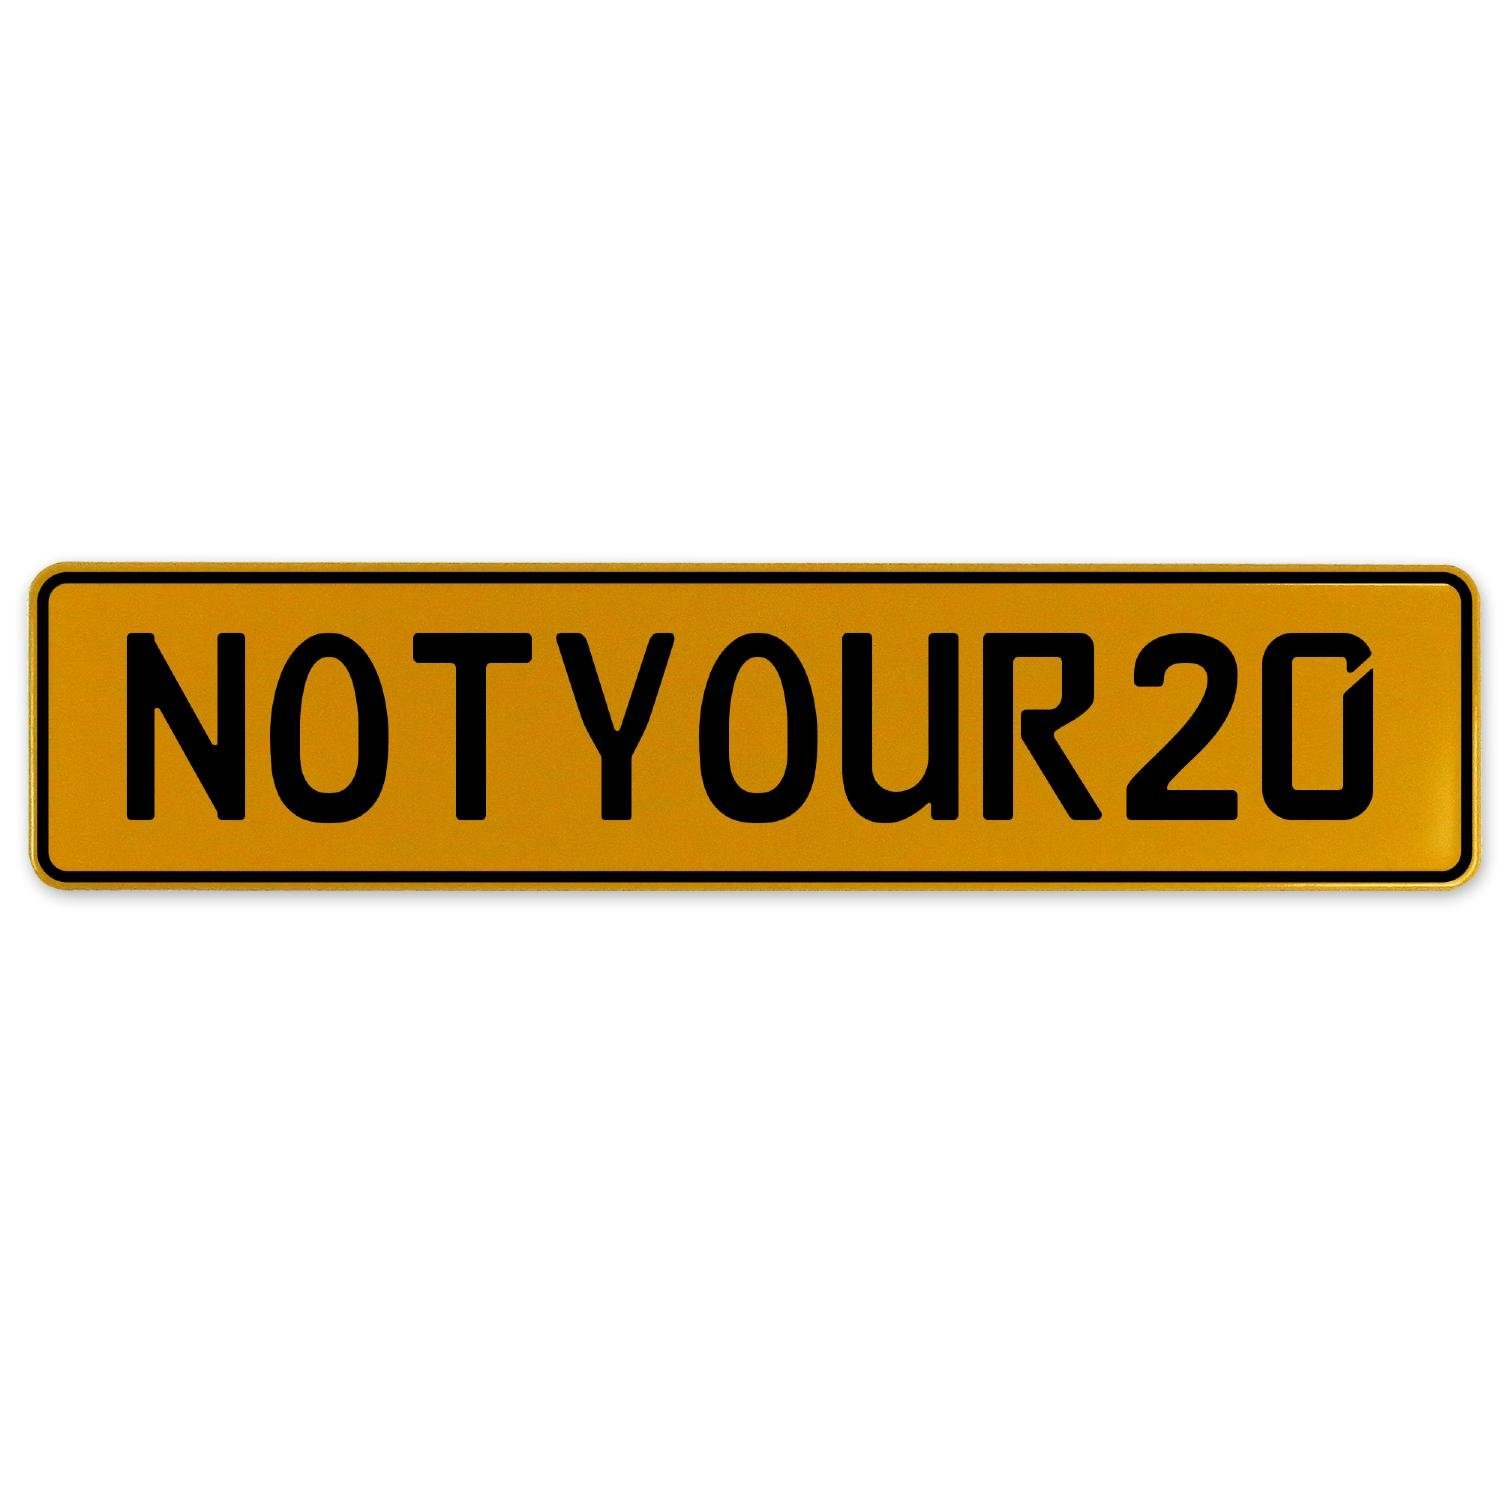 Vintage Parts 560458 NOTYOUR20 Yellow Stamped Aluminum European Plate